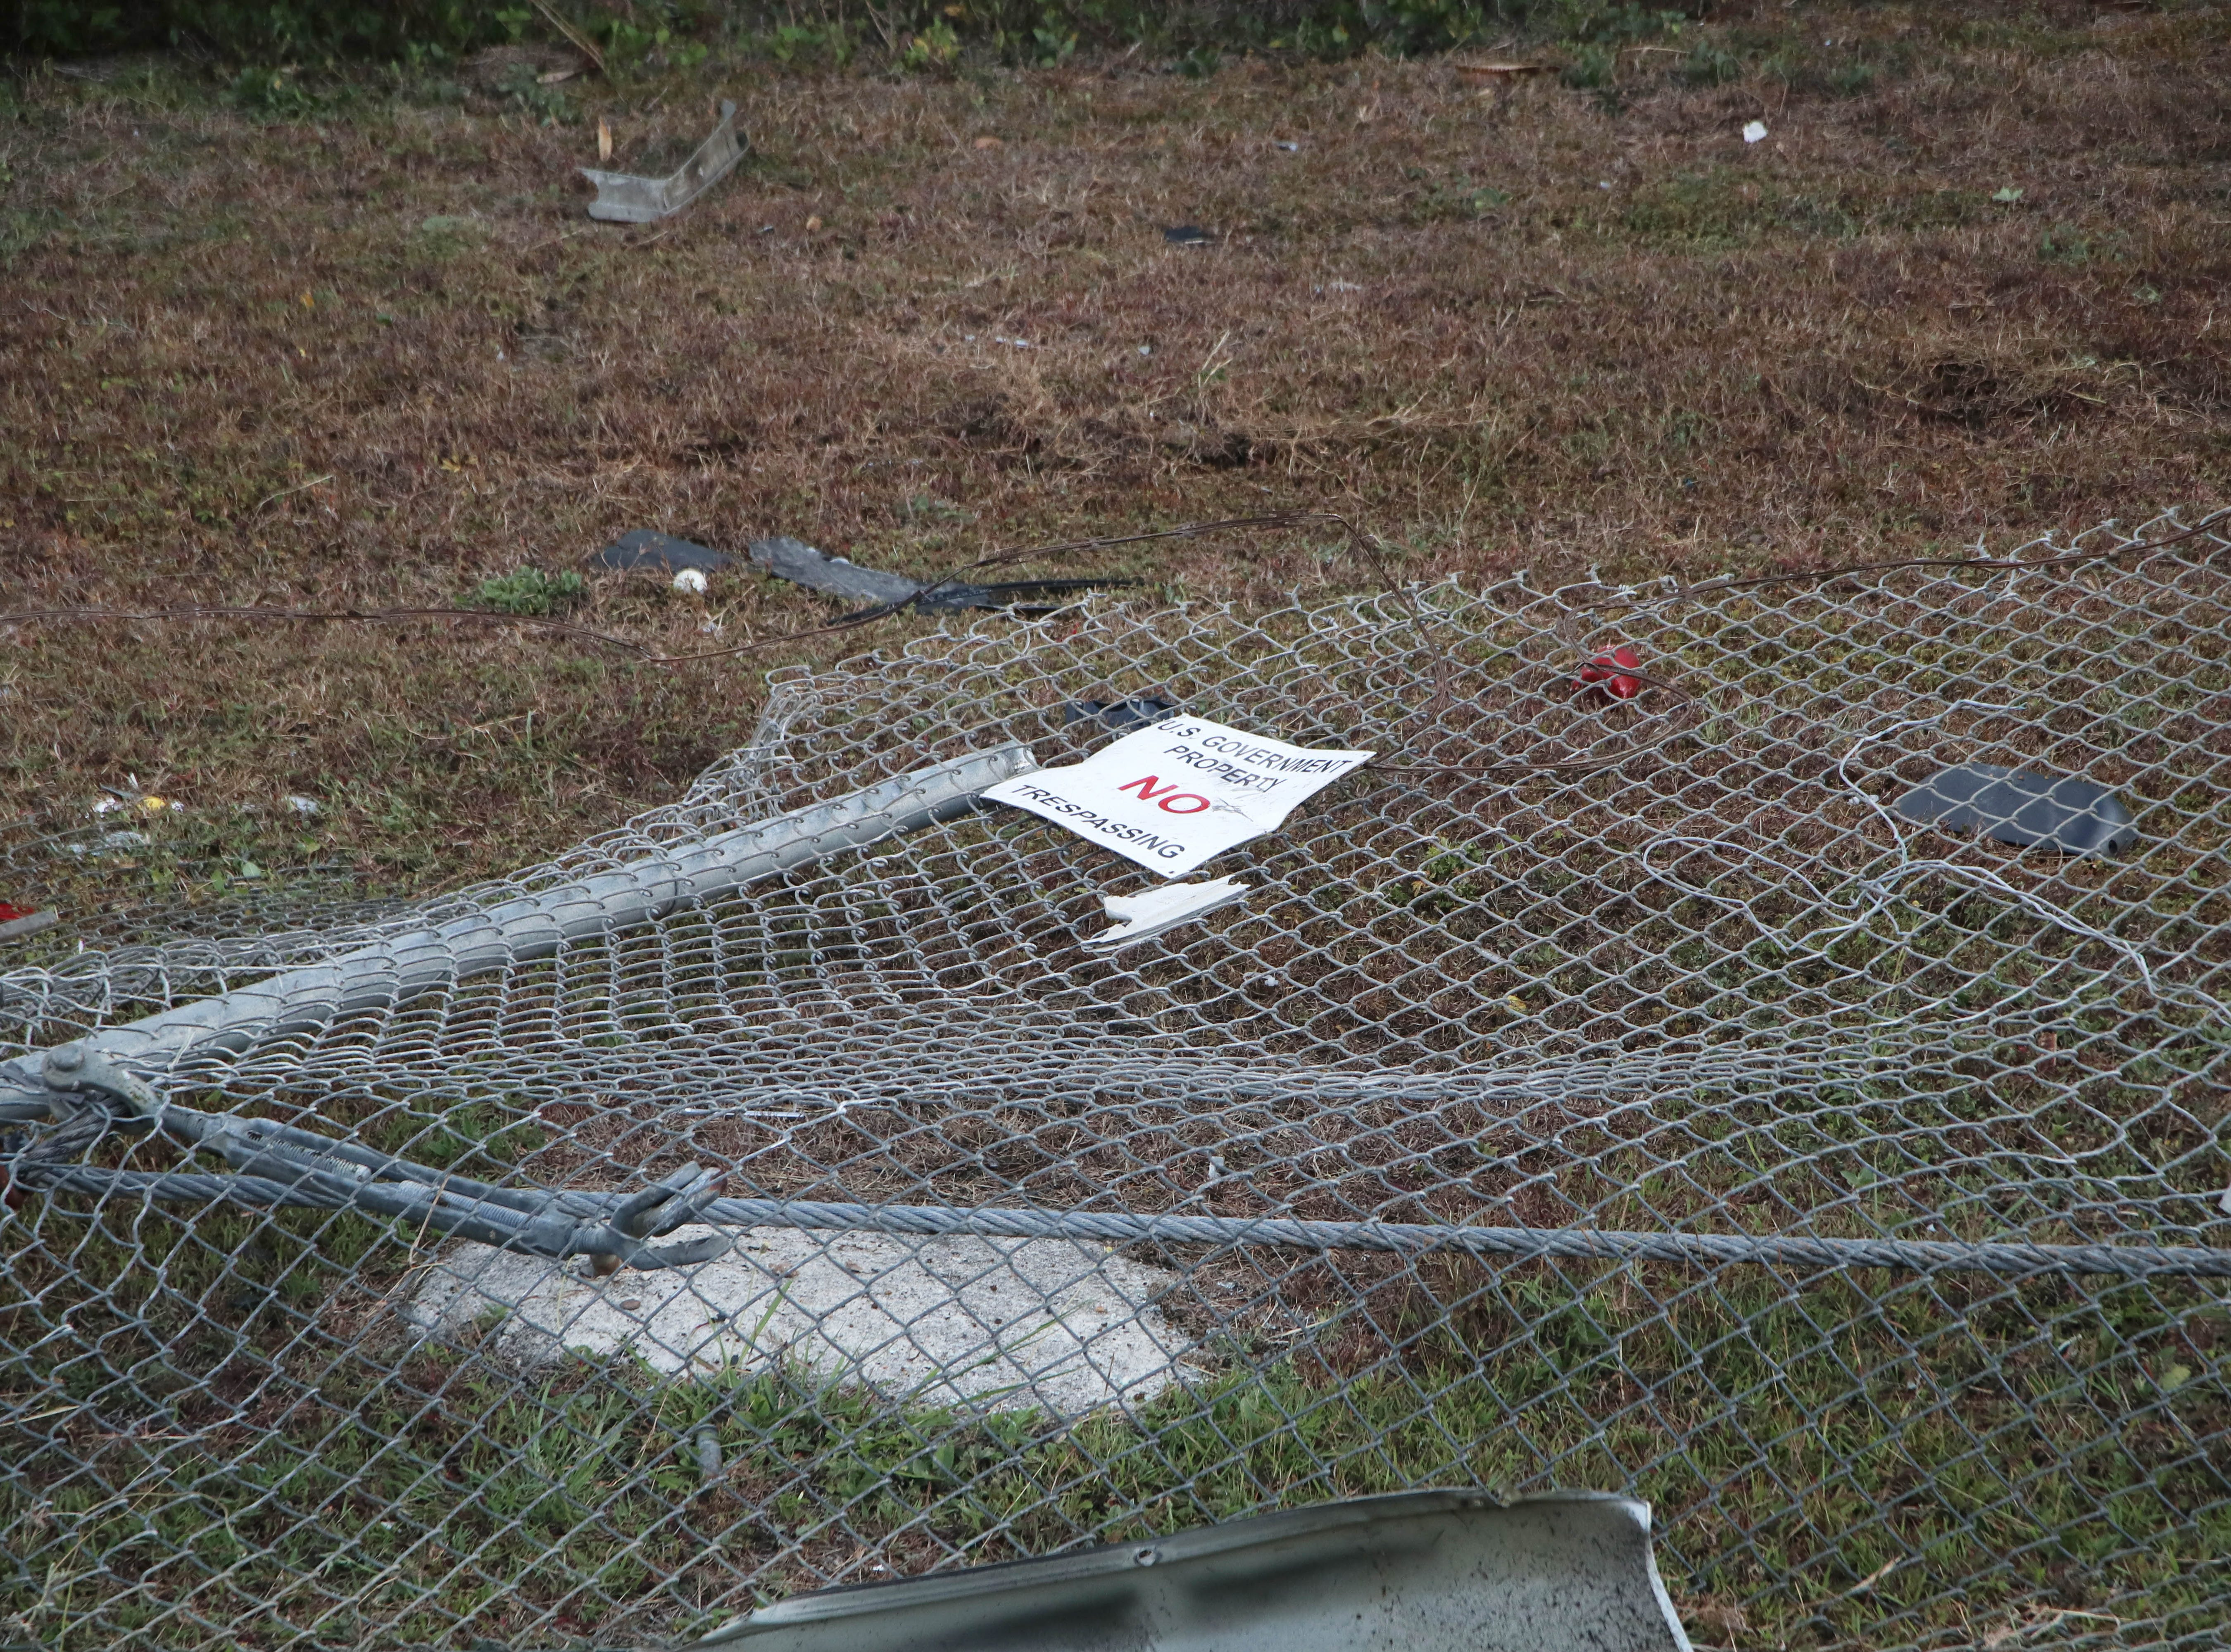 The fatal Agat car accident left part of a barbed wire fence flattened against the ground on Tuesday, April 16, 2019.